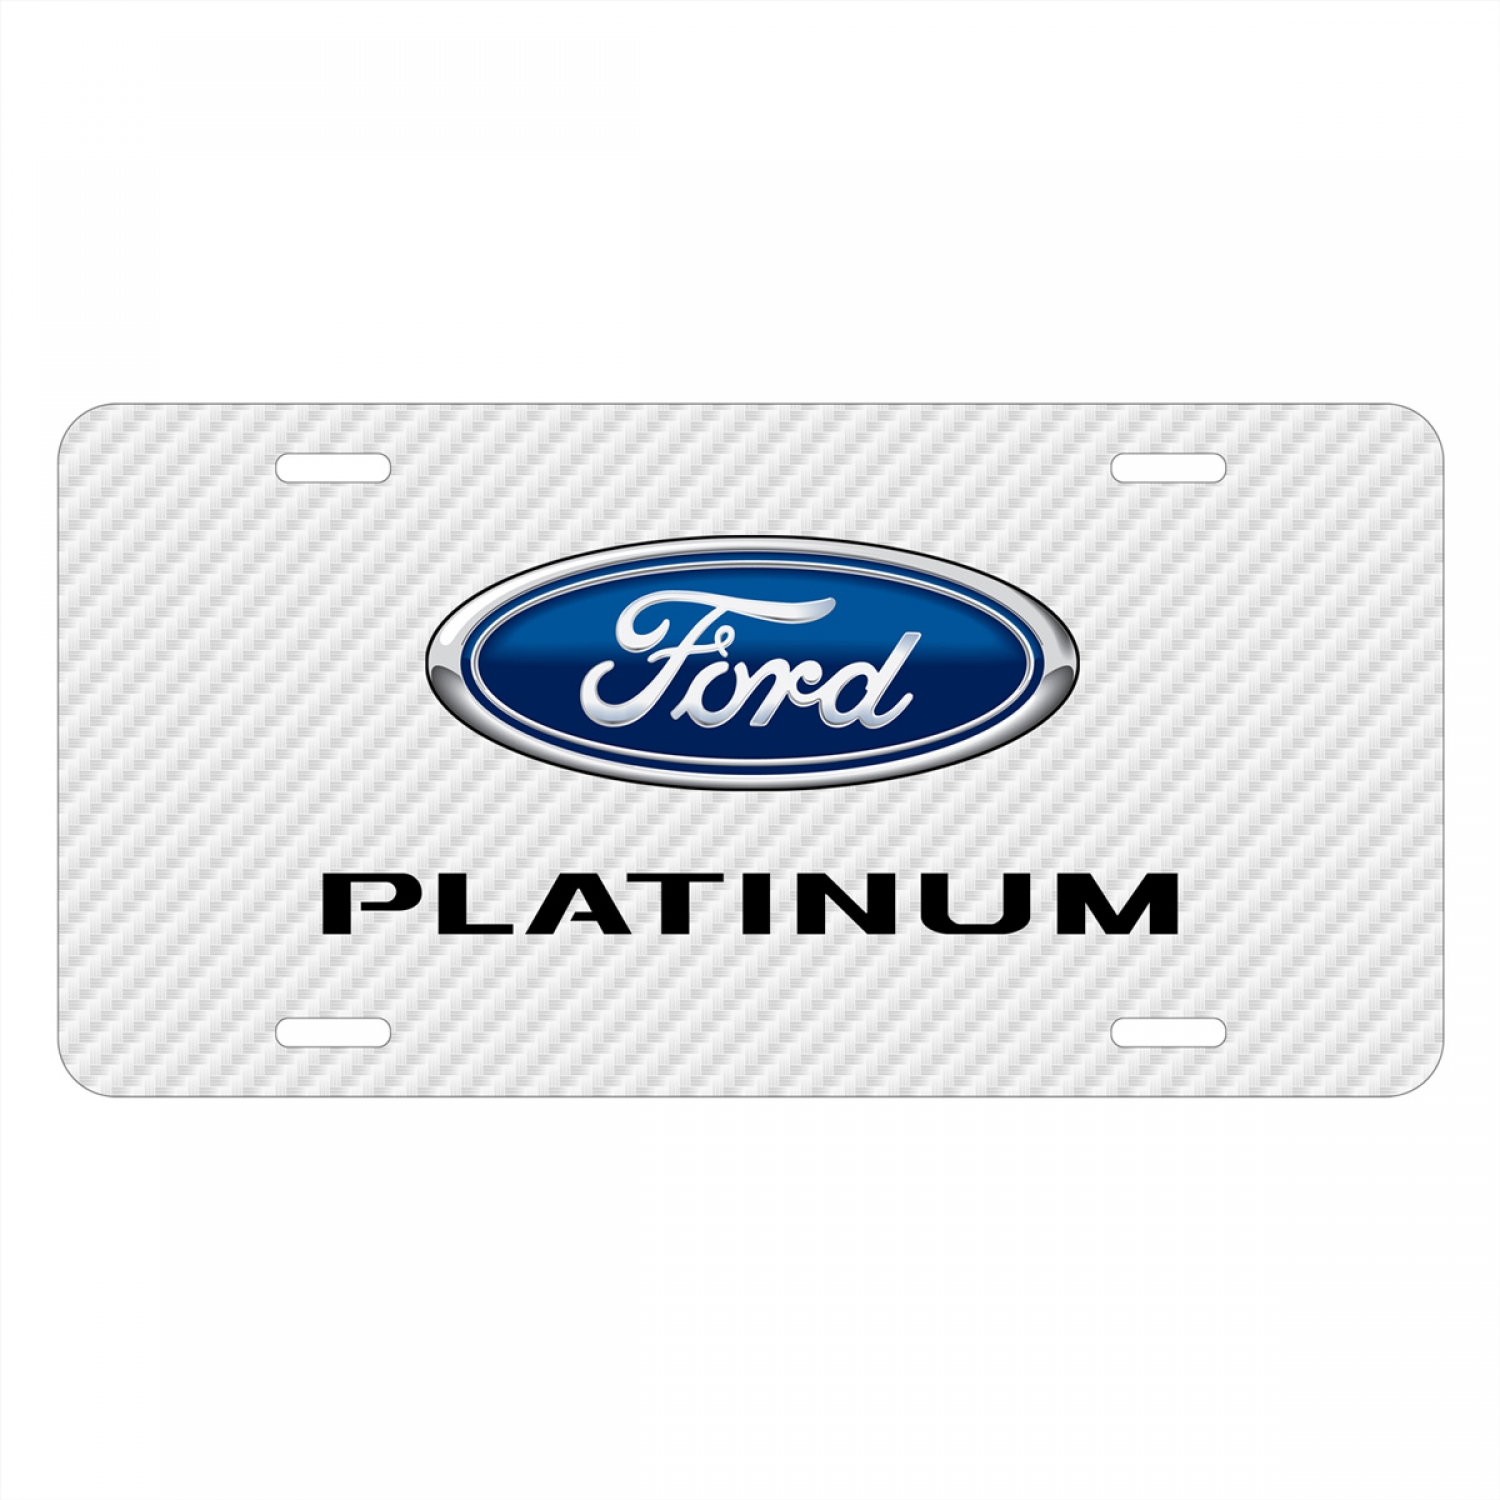 Ford F-150 Platinum White Carbon Fiber Texture Graphic UV Metal License Plate